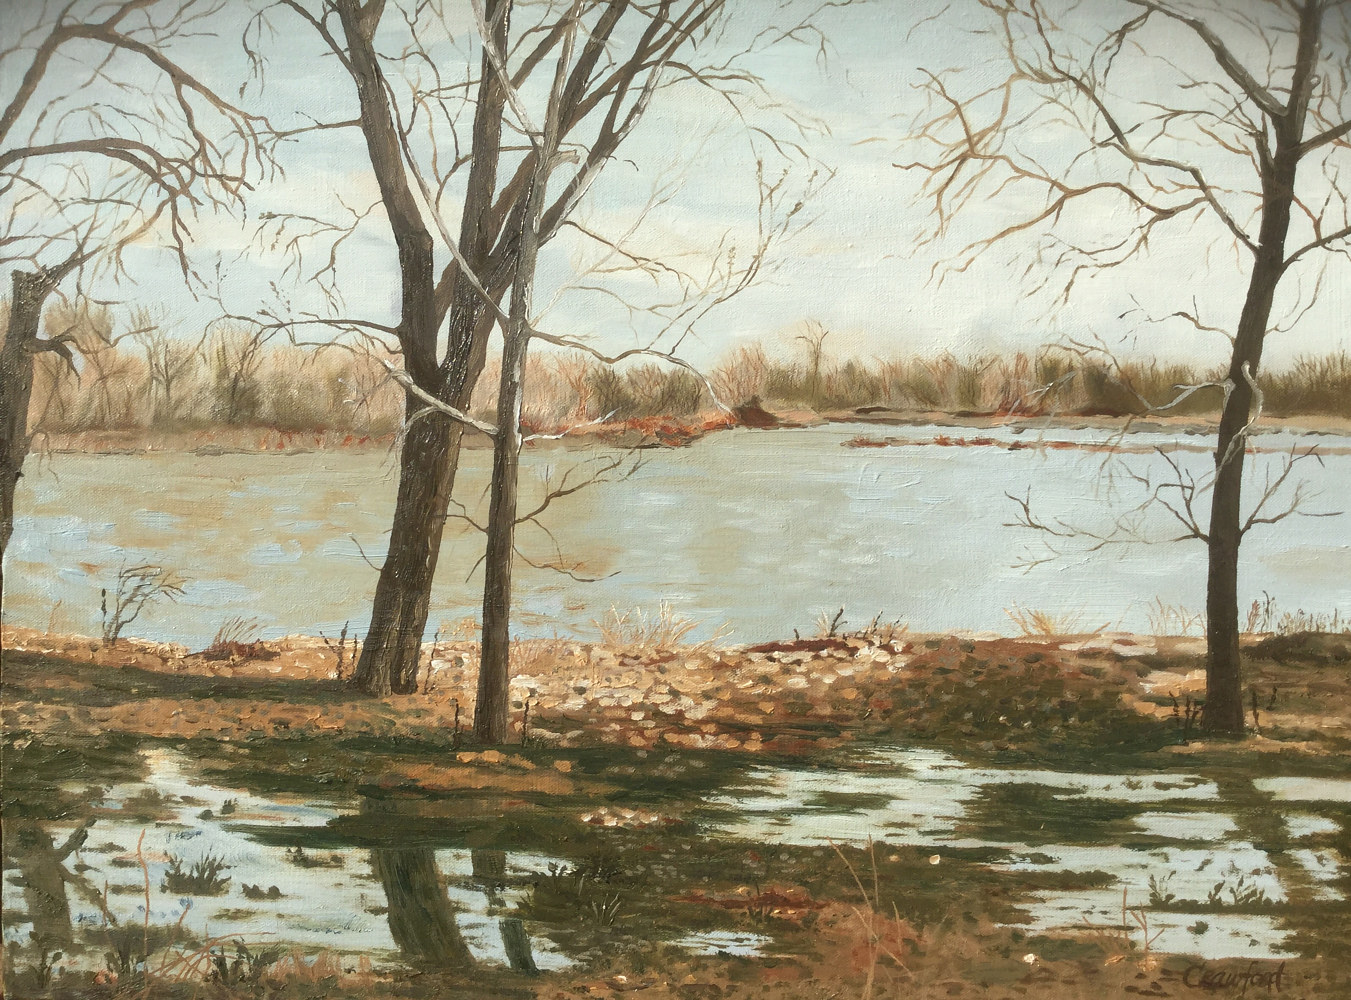 Oil painting The Missouri at Fort Osage by Jayne Crawford